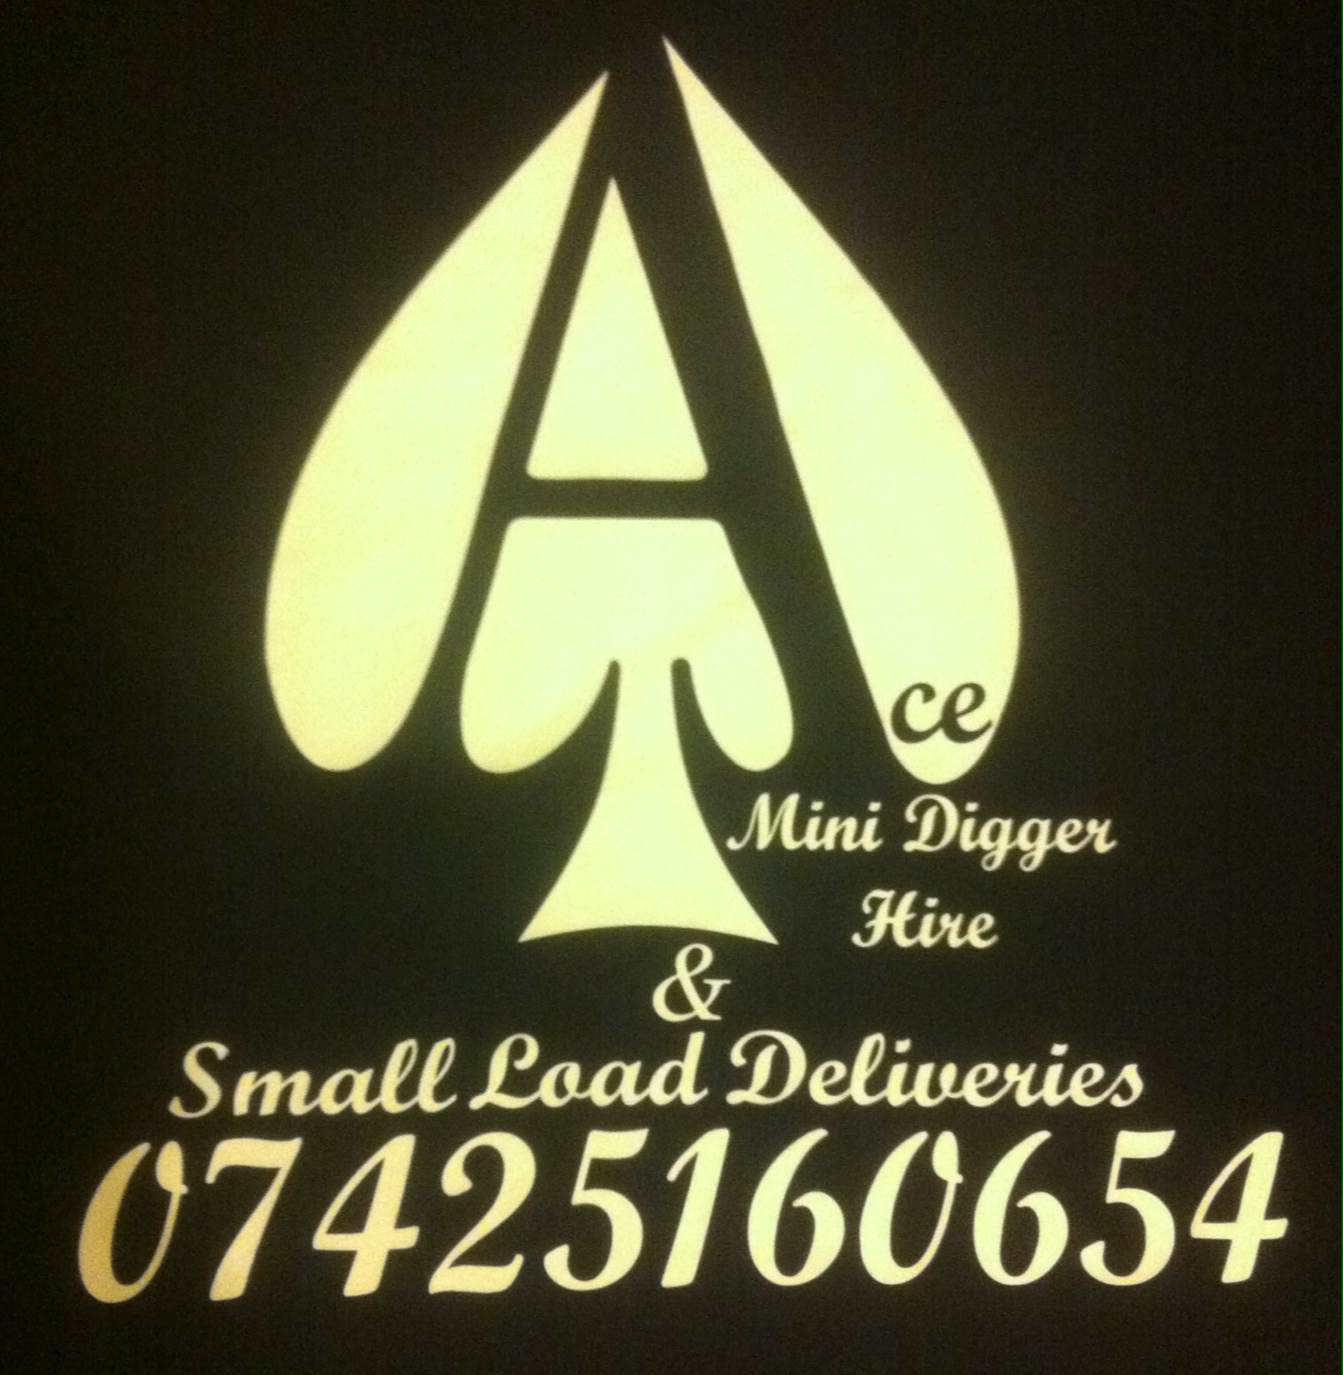 Ace Mini Digger Hire & Contractors